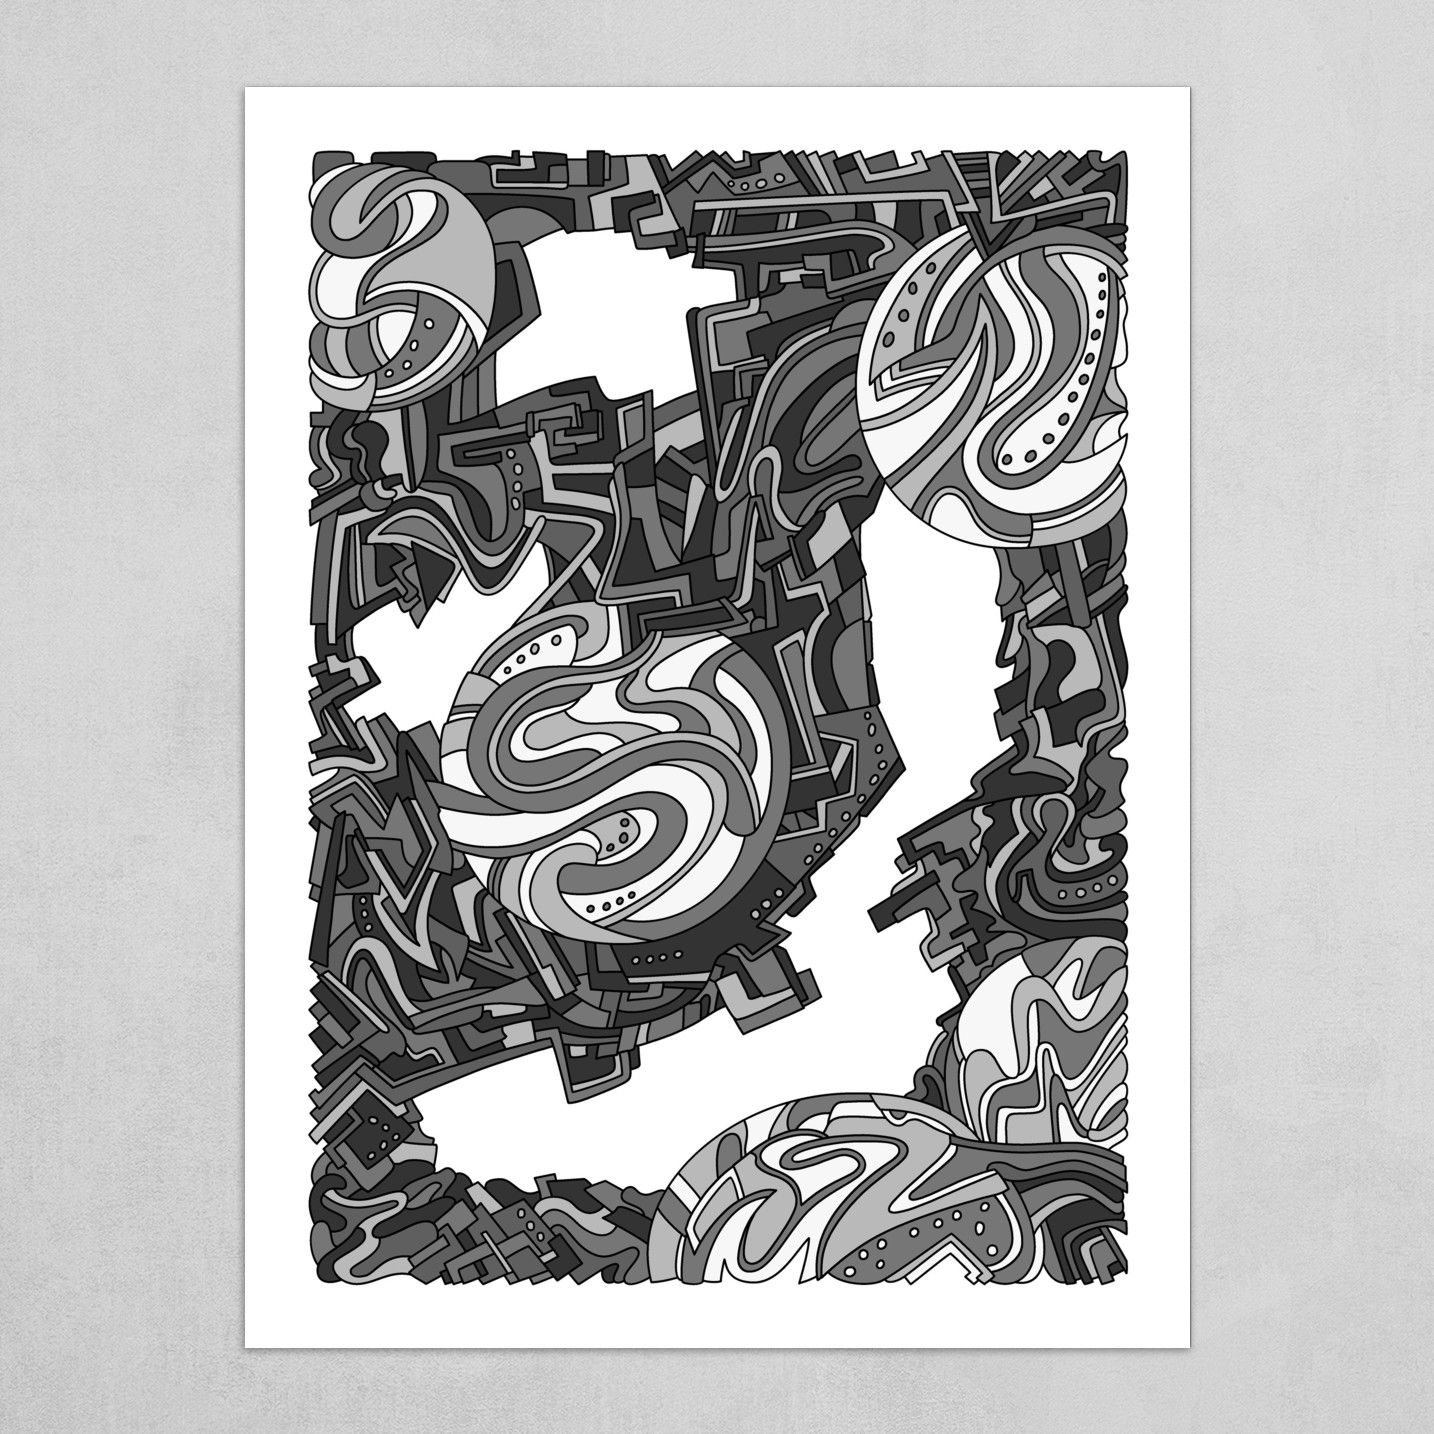 Wandering Abstract Line Art 21: Grayscale